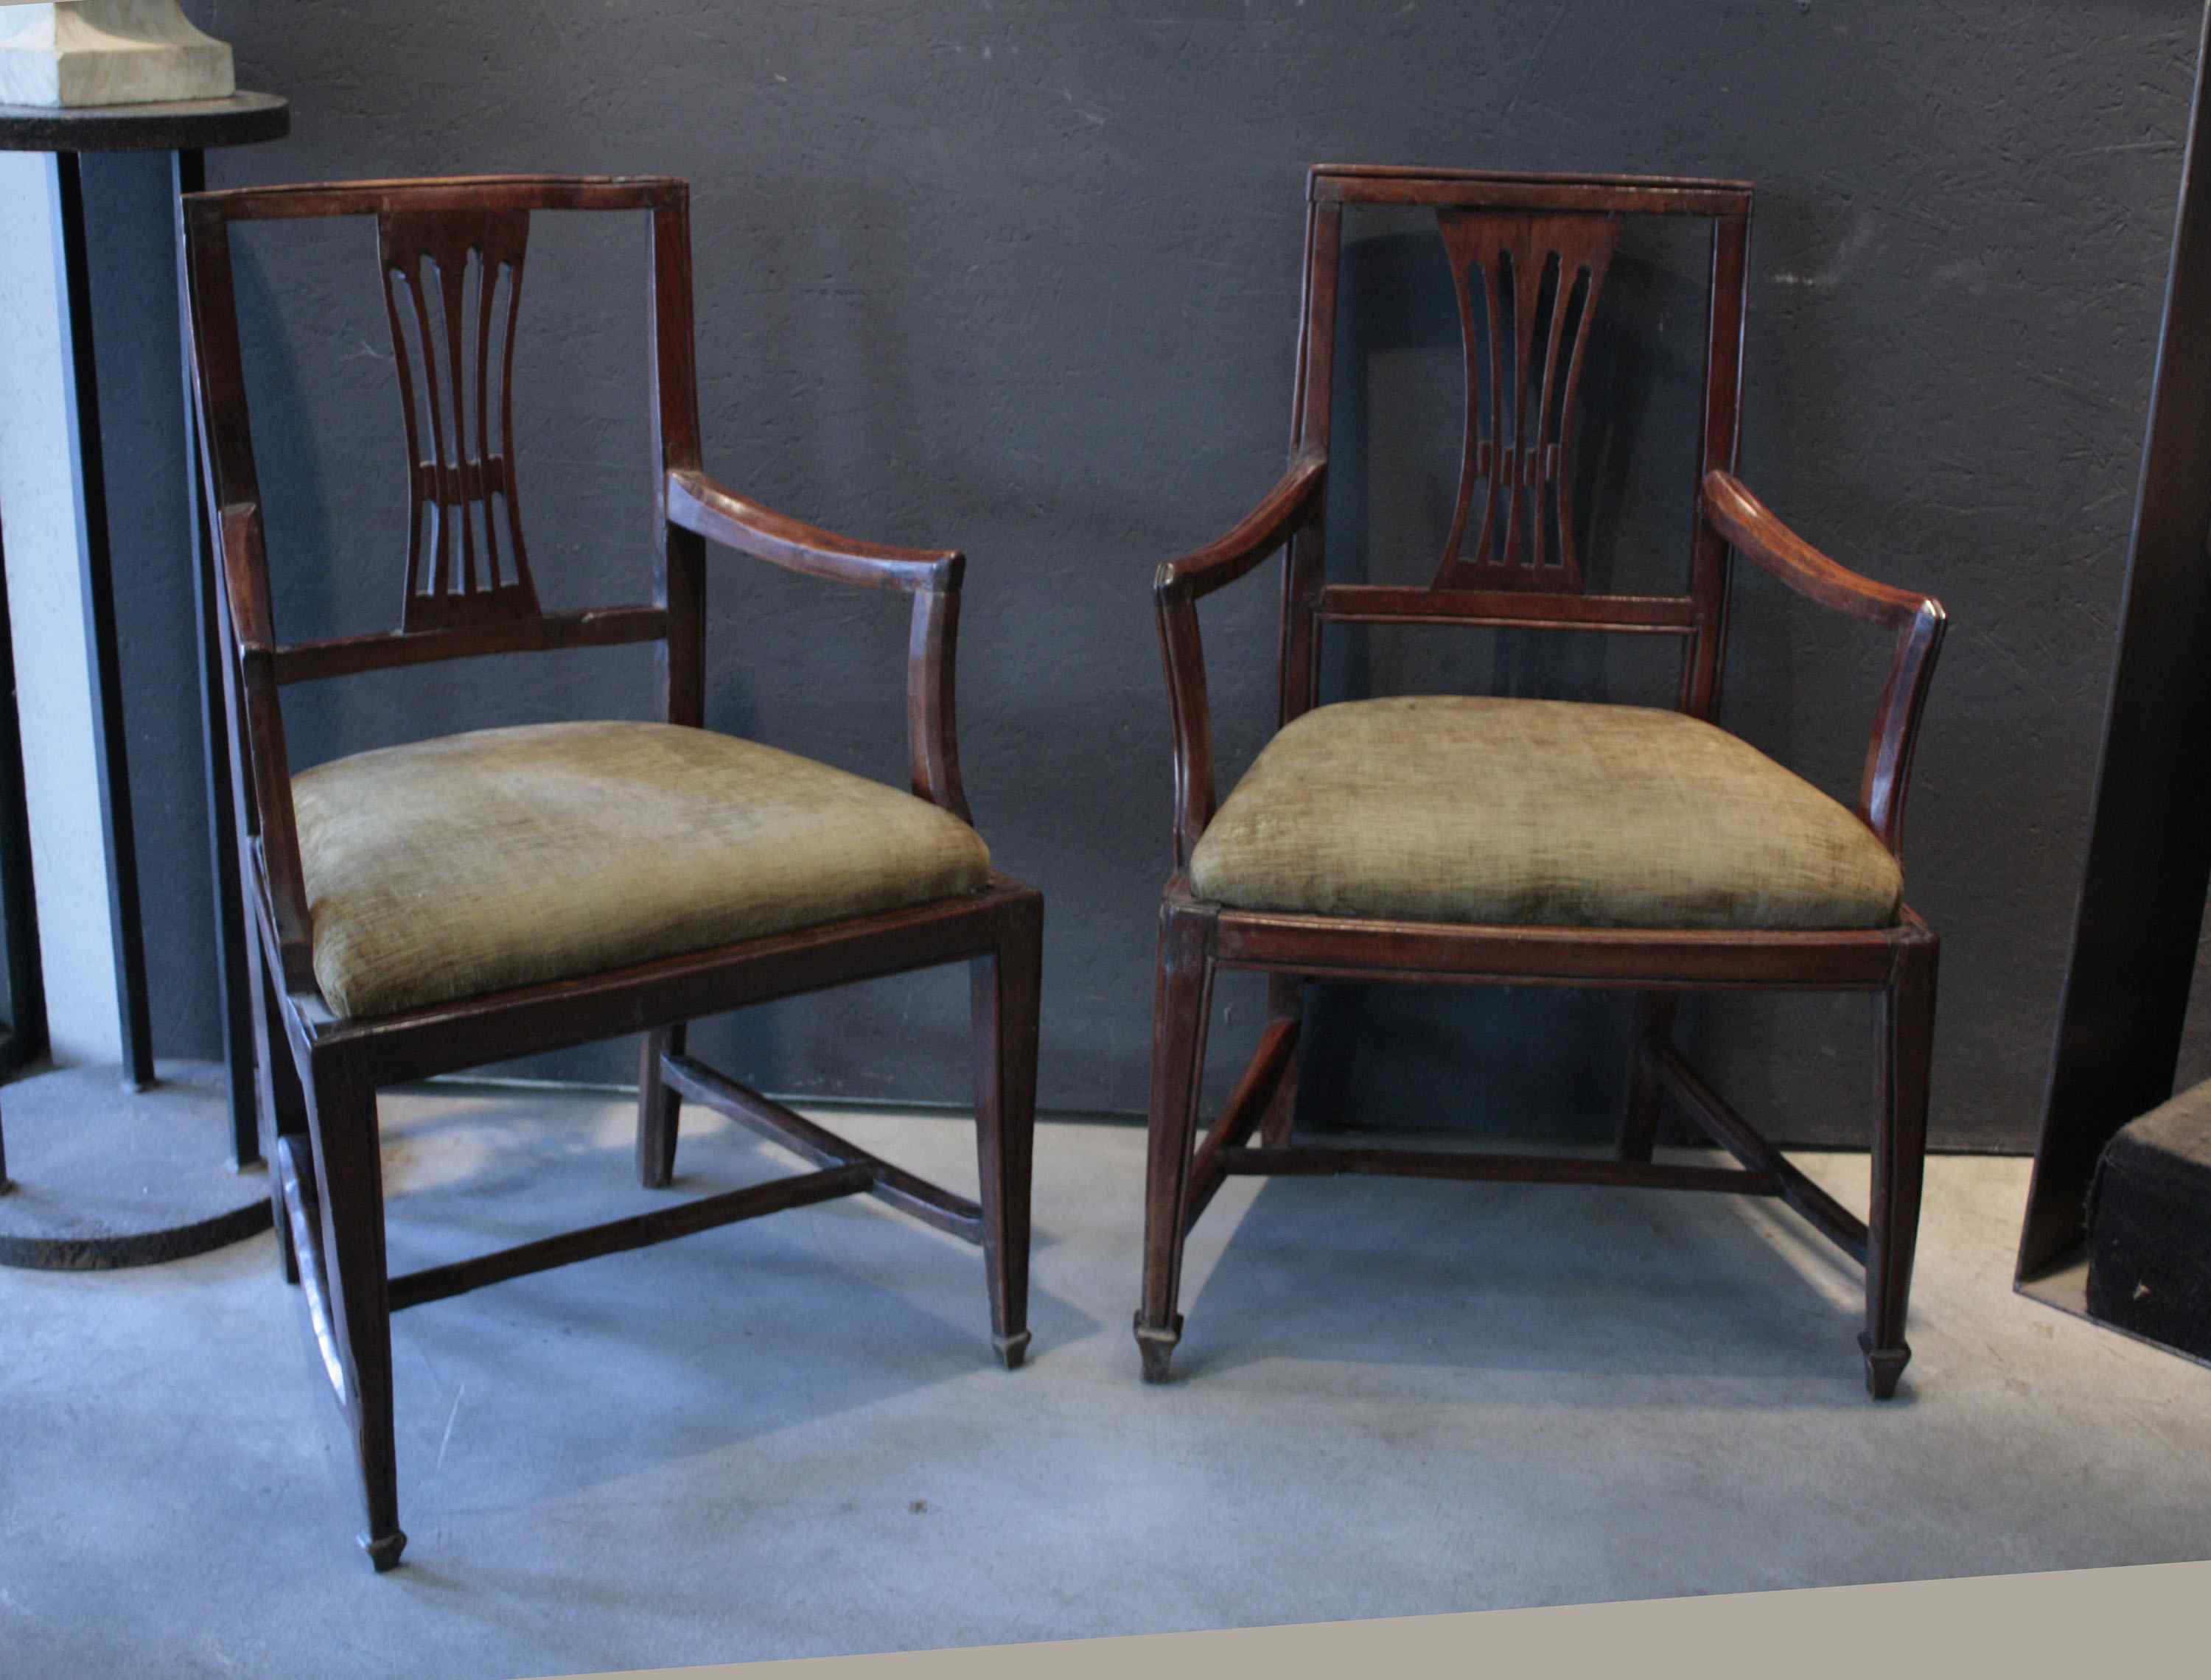 Venetian armchairs of the '700